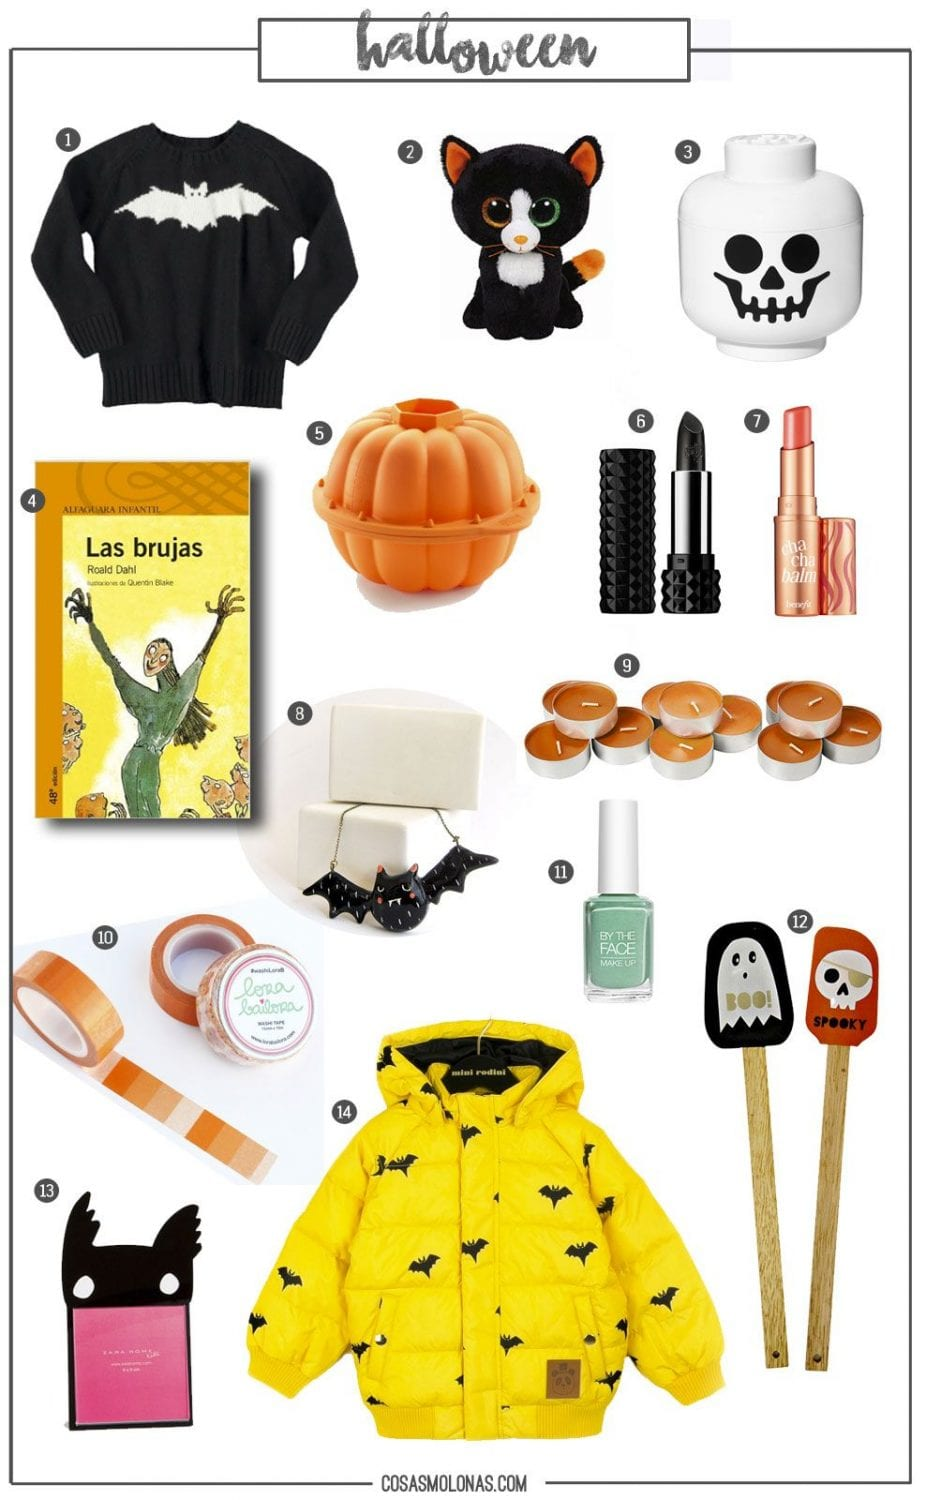 Wishlist: Halloween